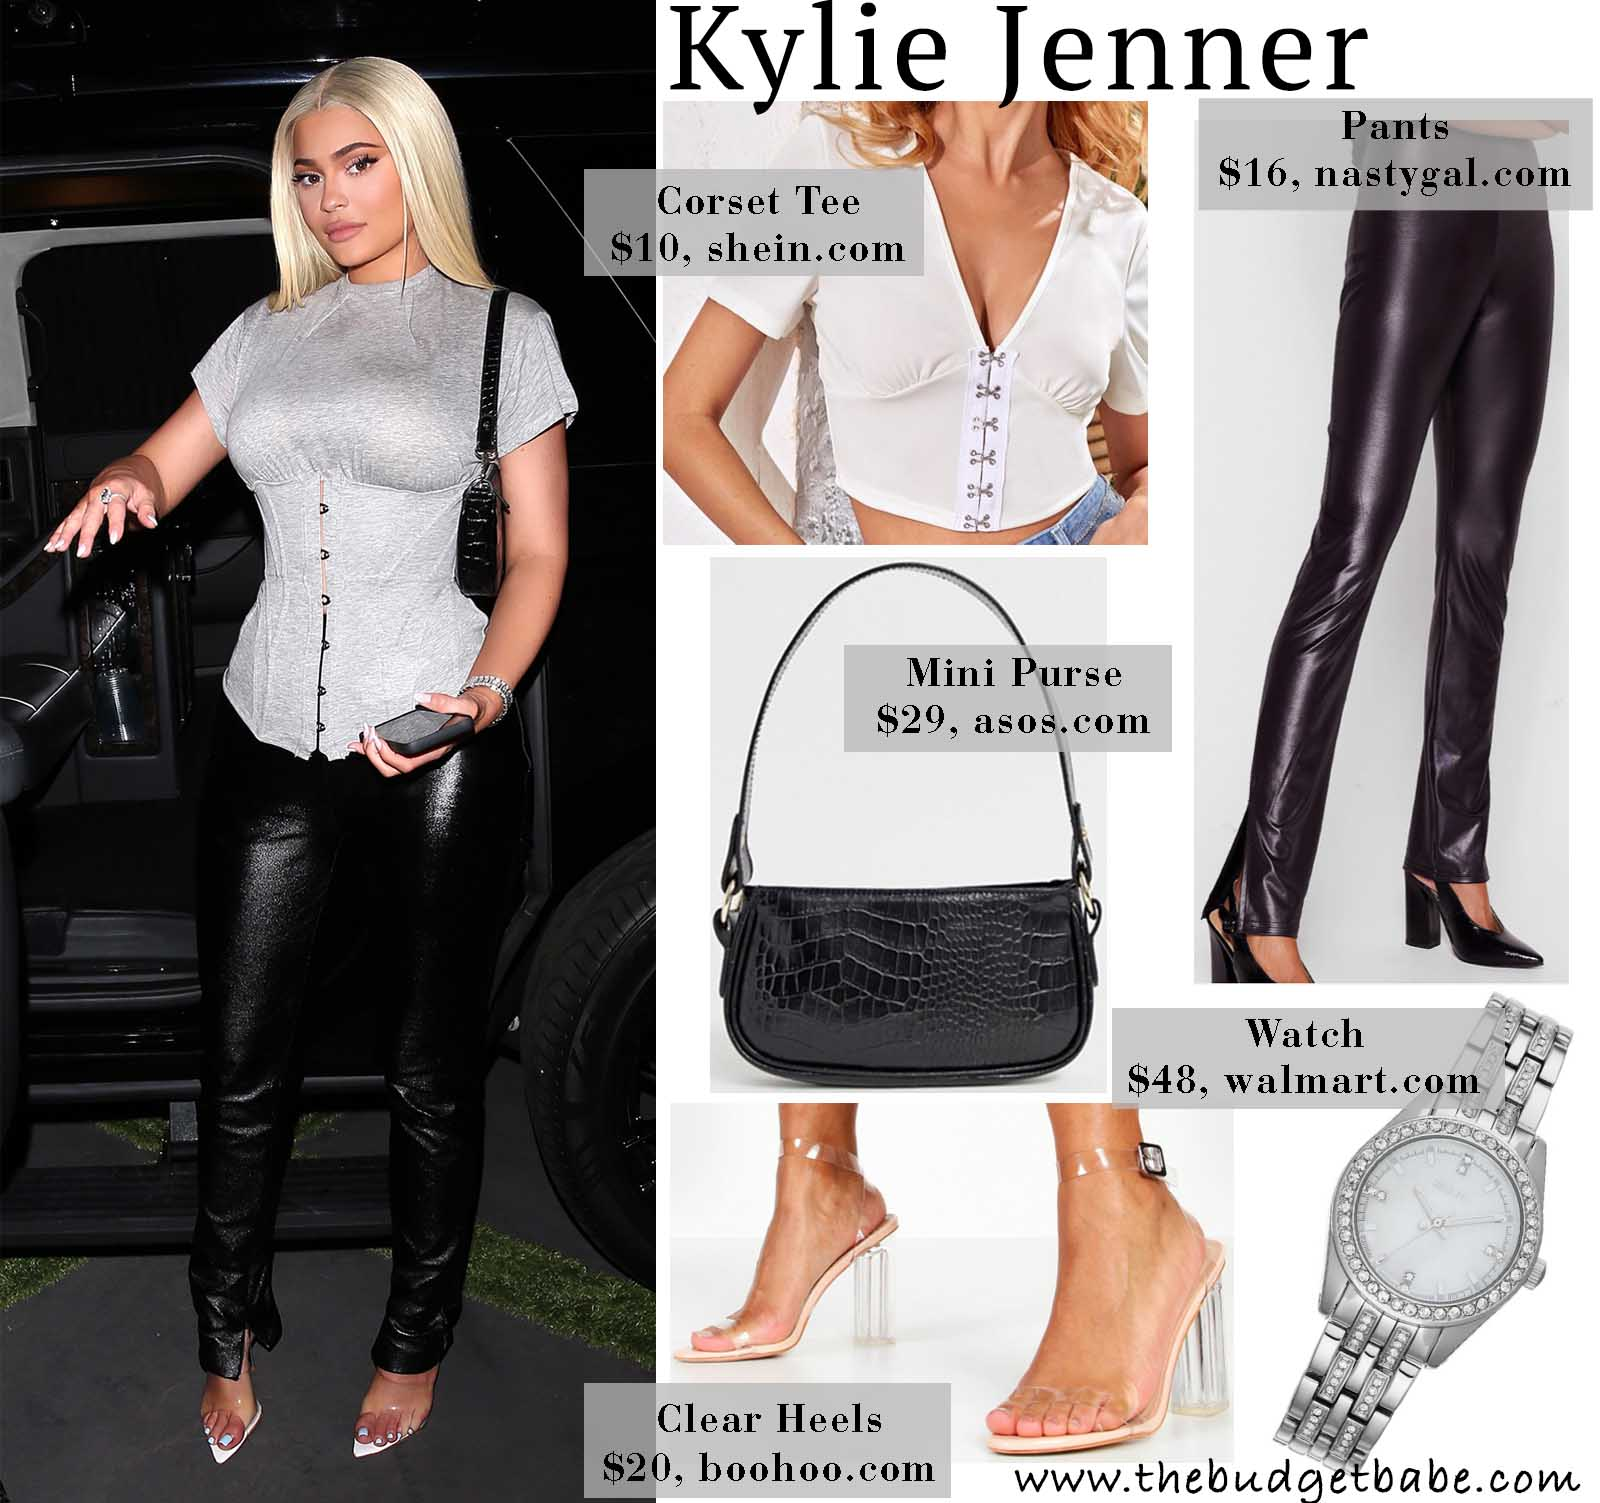 Kylie rocks a fresh take on the corset top.